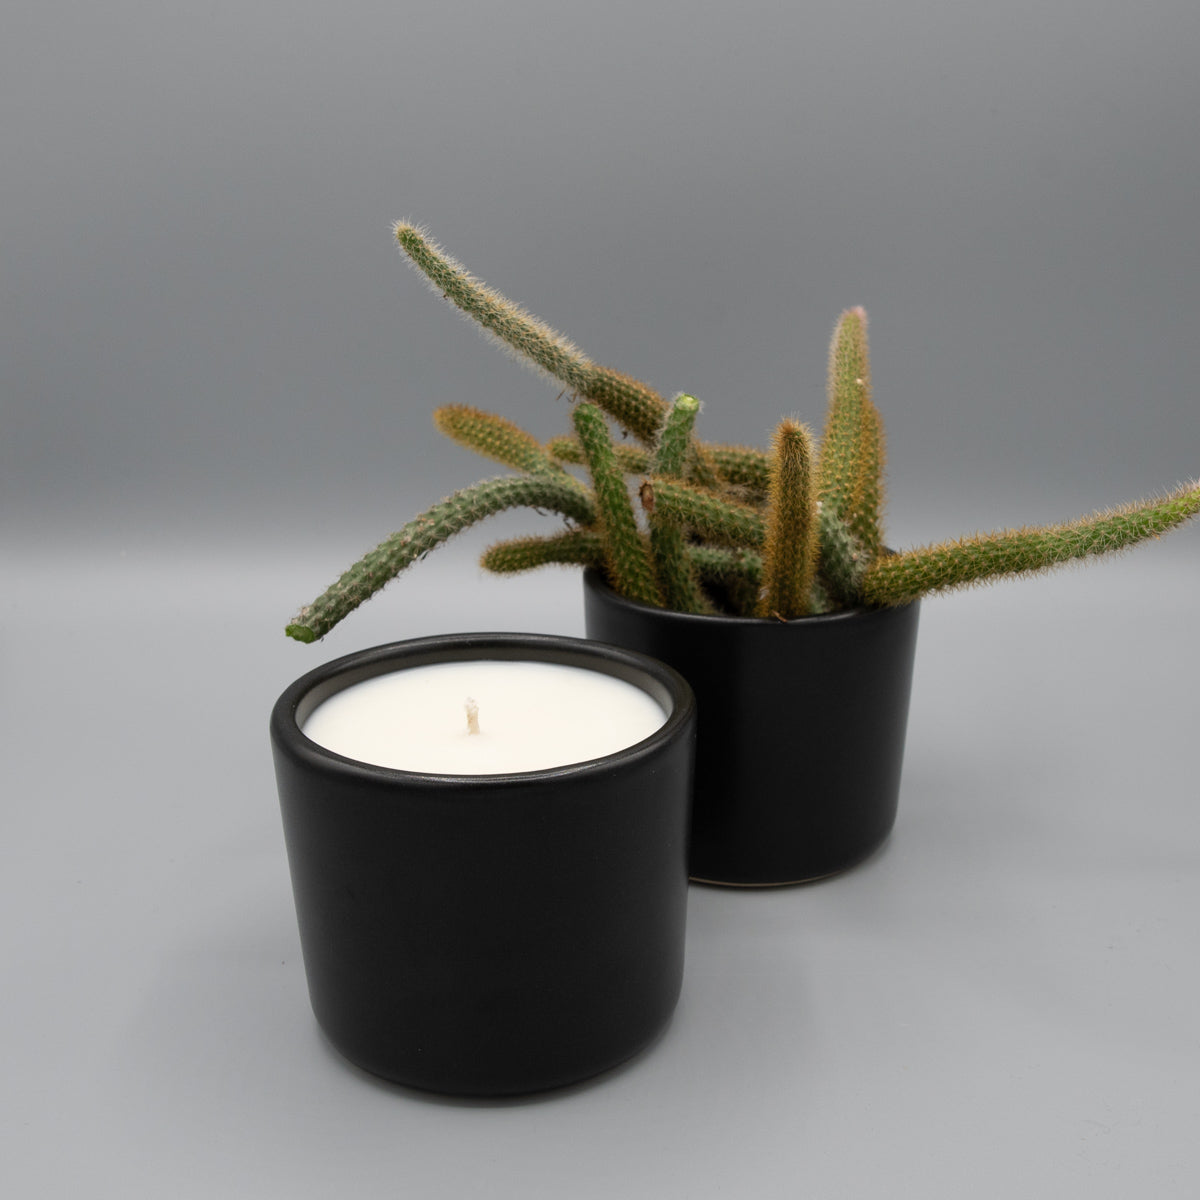 A small black ceramic candle re-used as a planter with cacti.